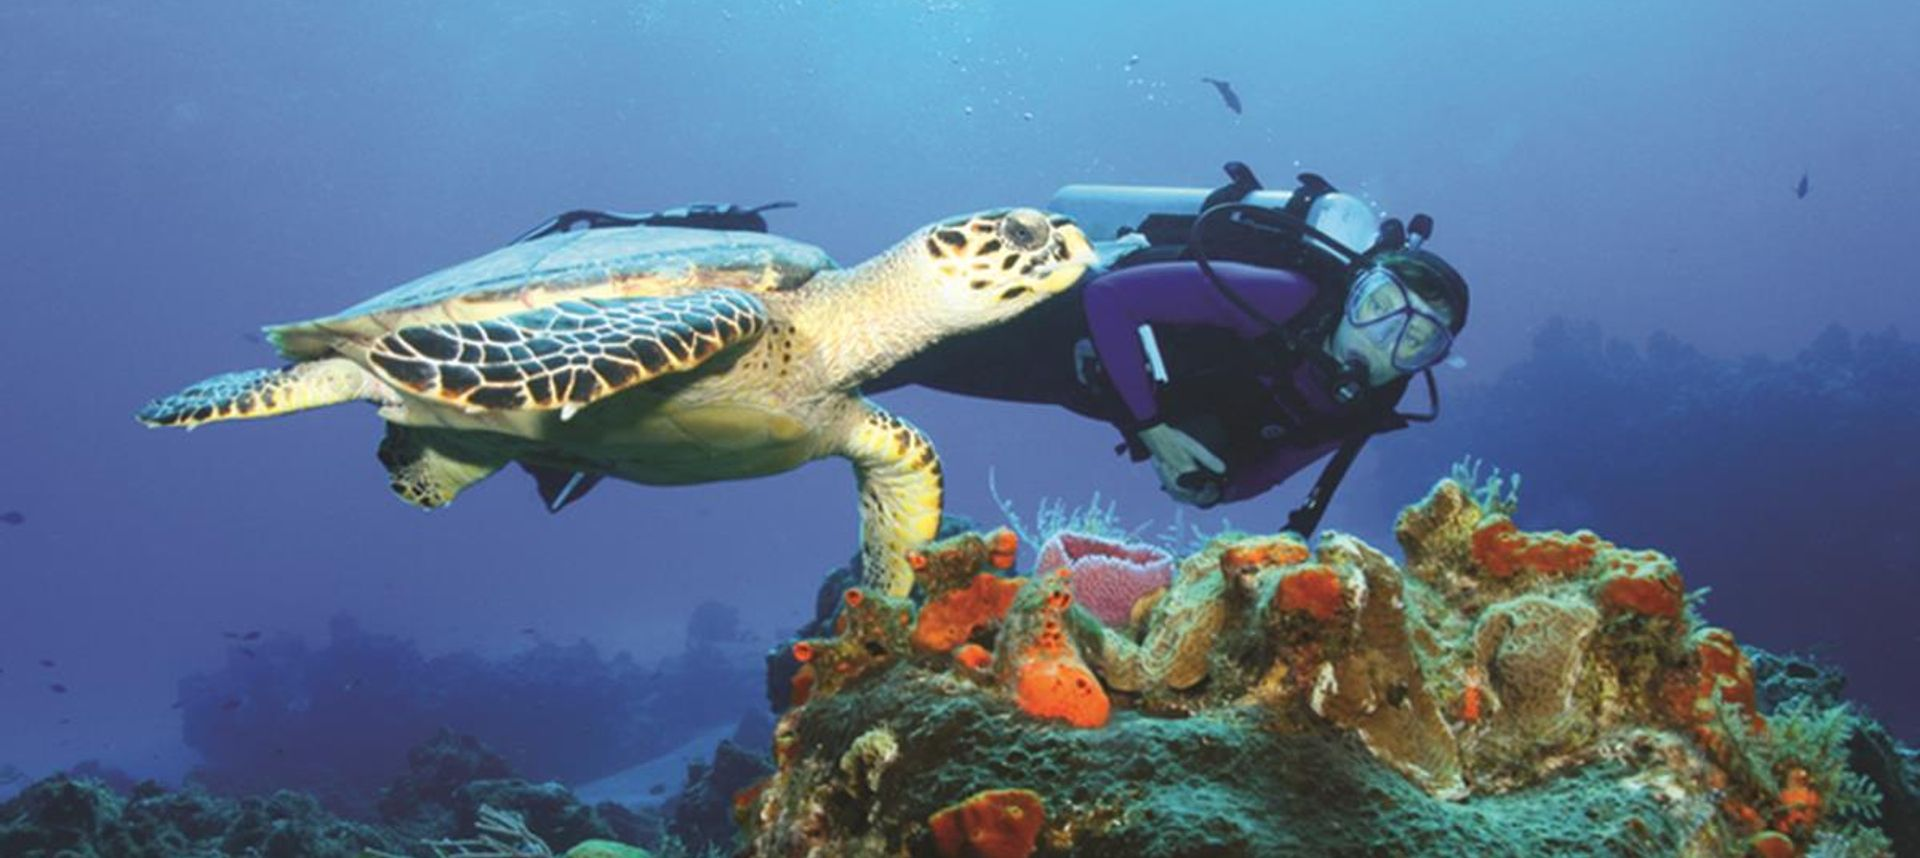 Diving and snorkelling immerses you into a floaty, contemplative world (Hank Plank)